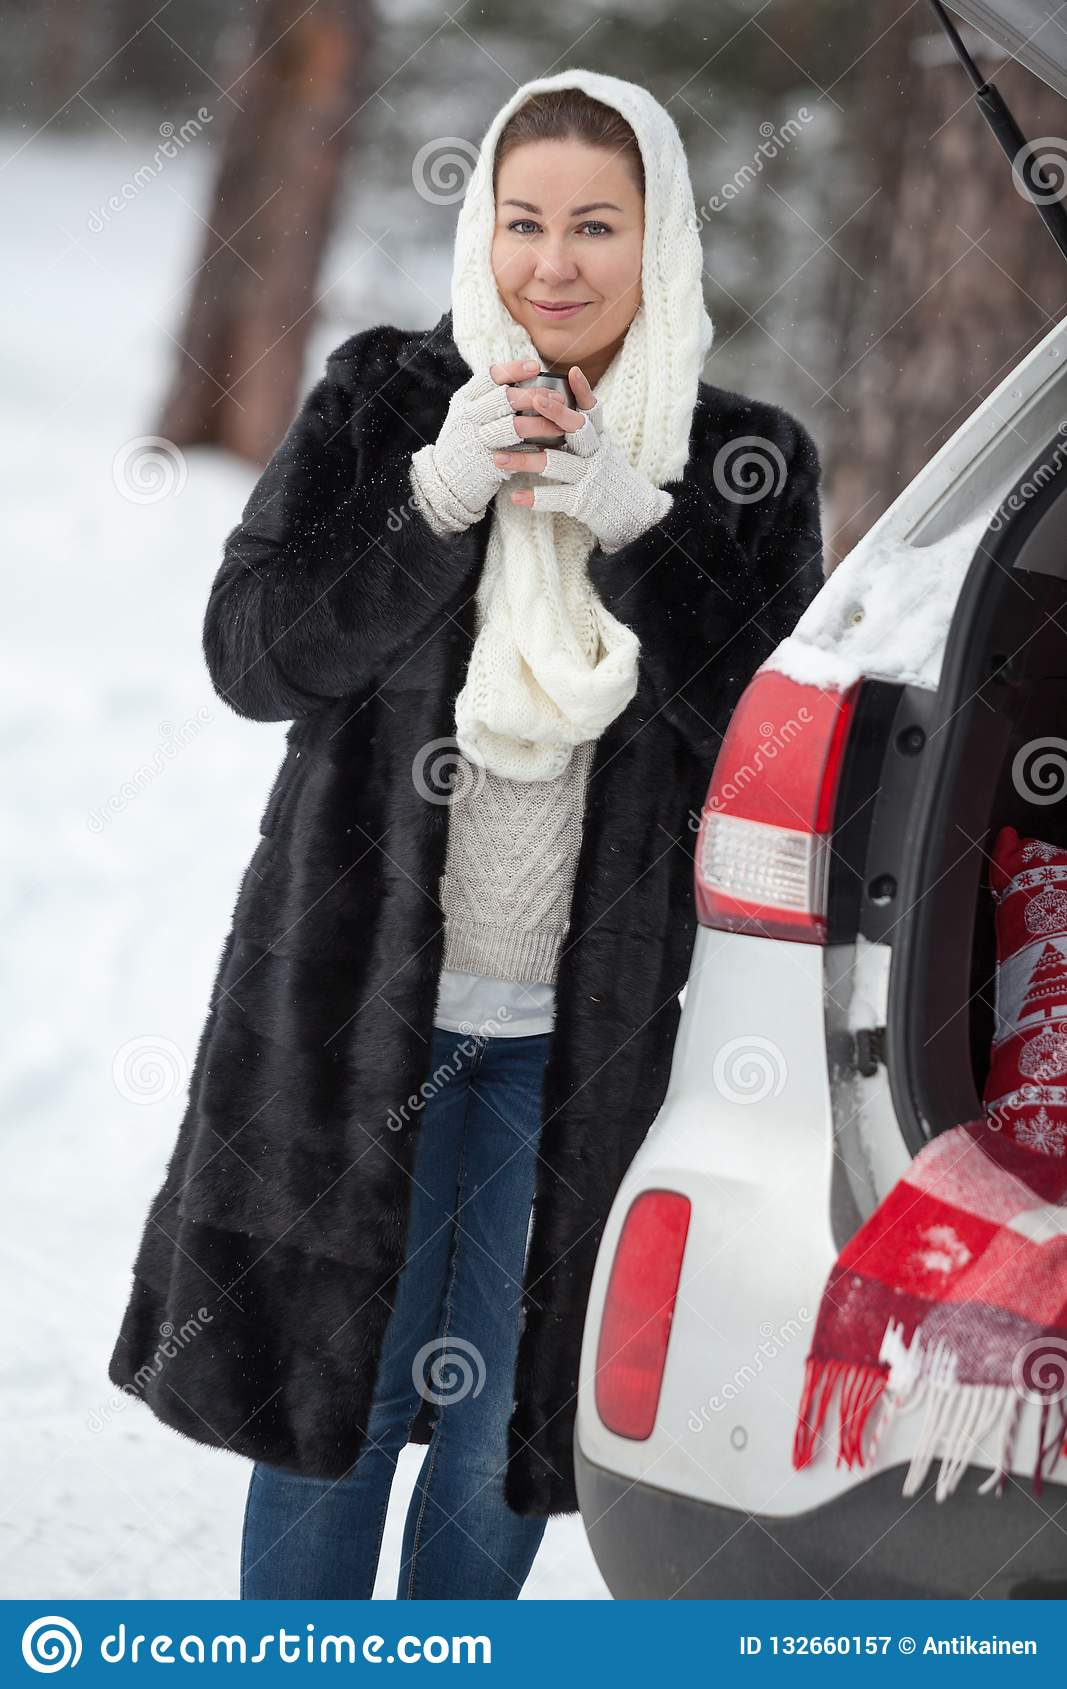 Young woman standing near suv and holding tea mug in hands at winter season